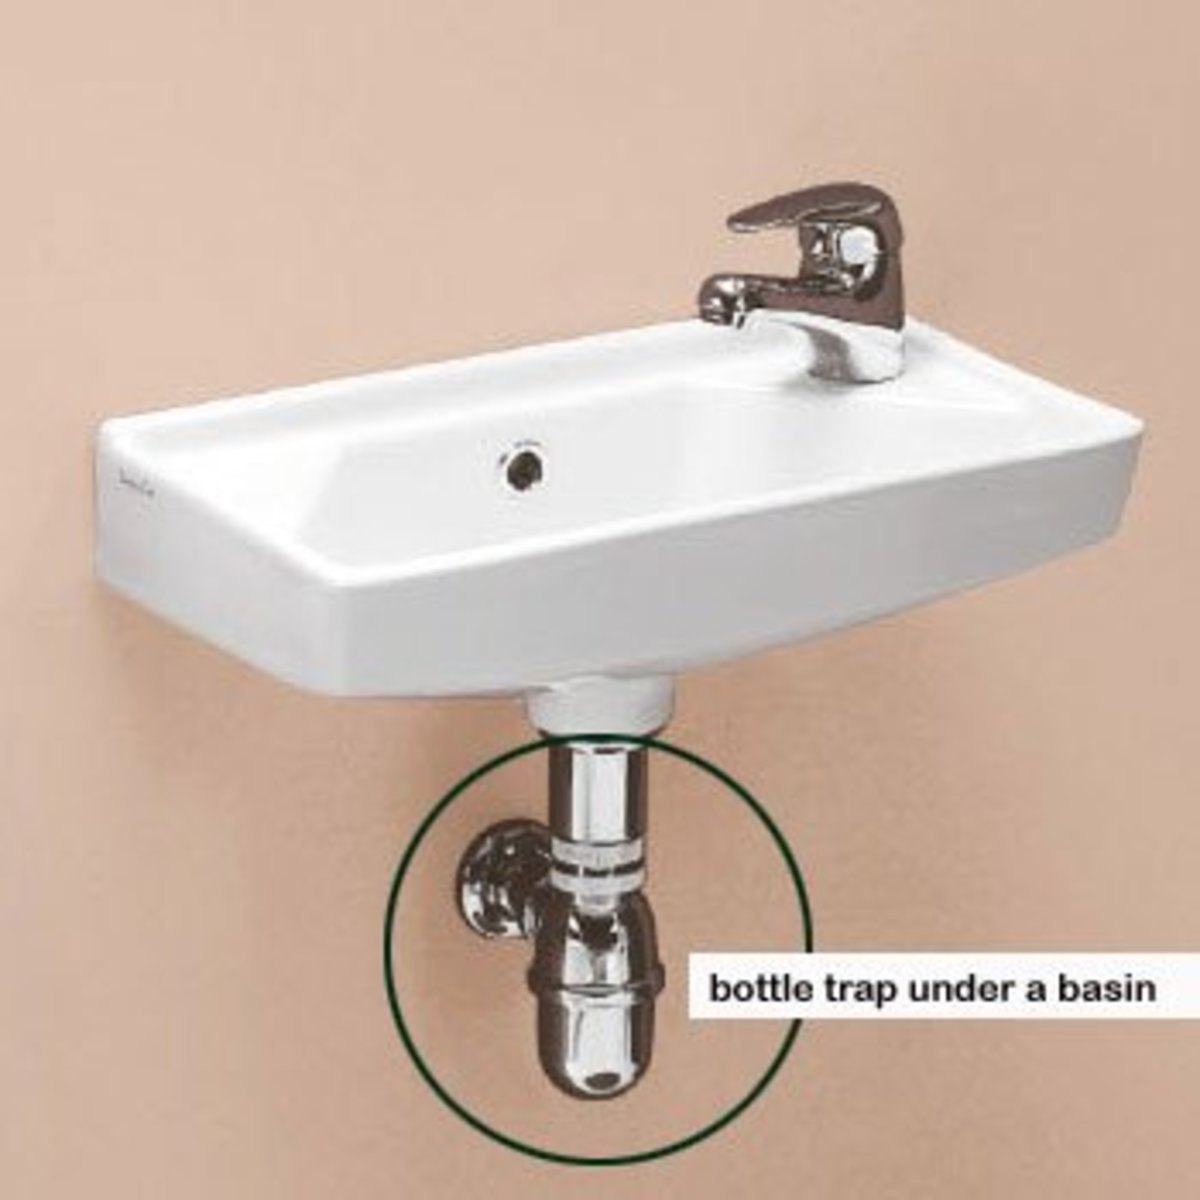 A bottle trap fitted under a wall-hung basin.